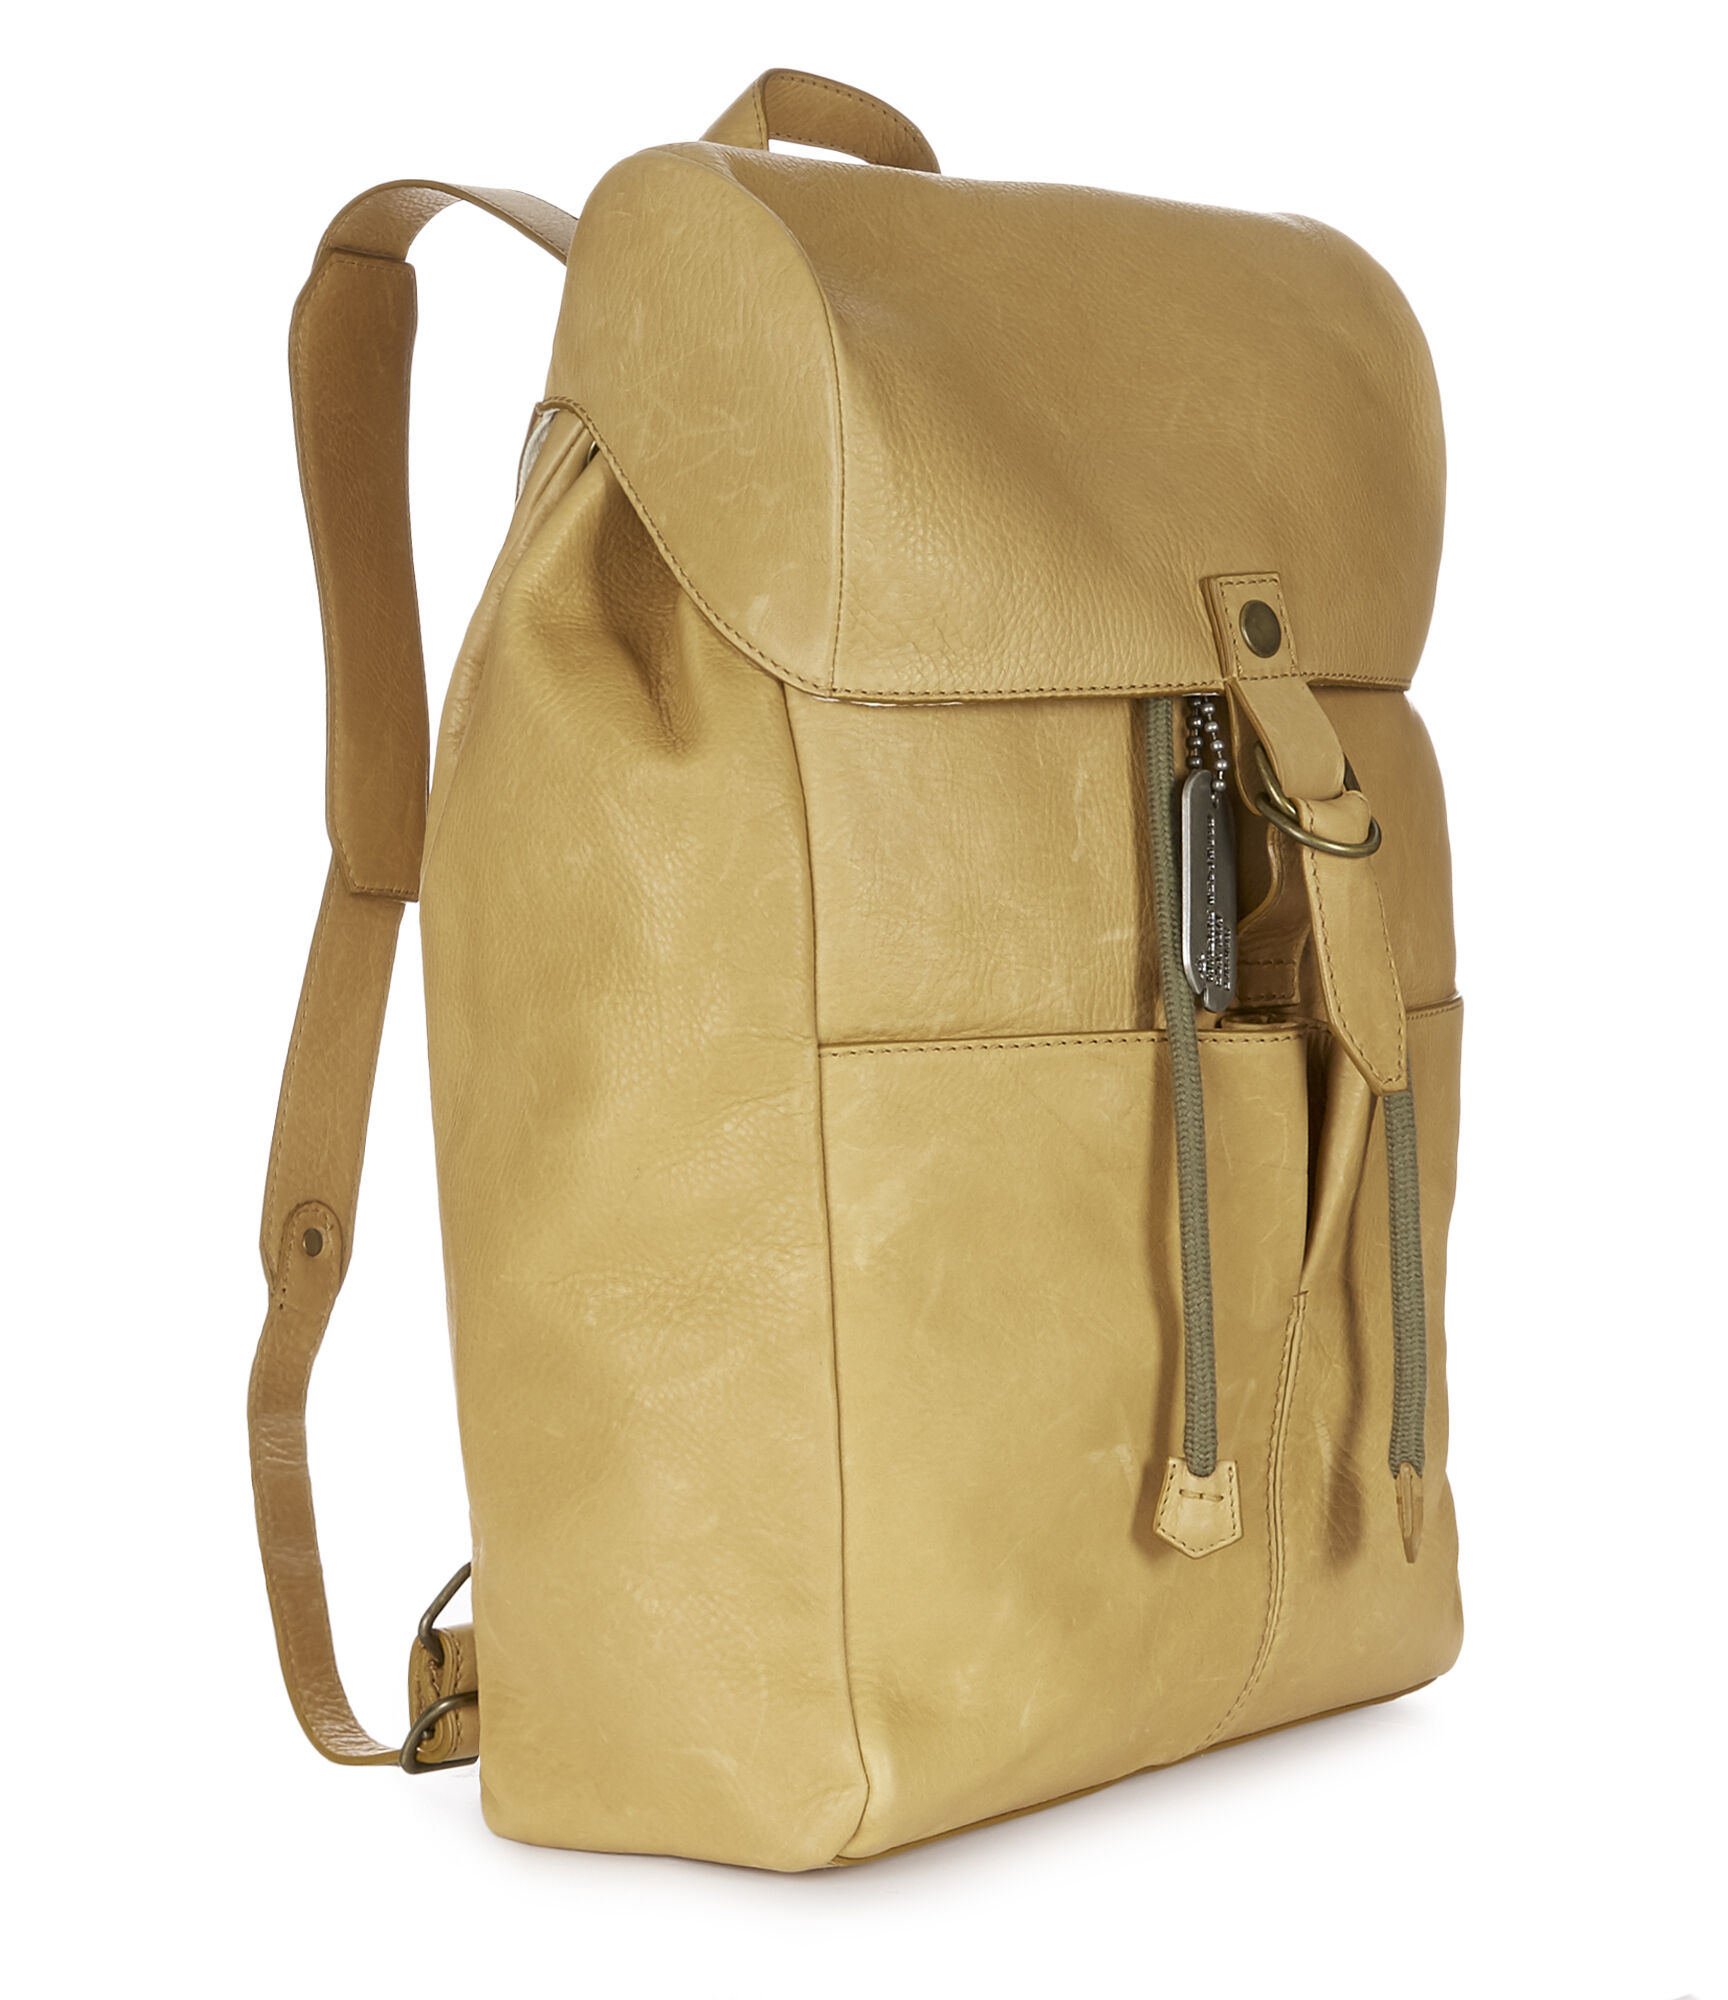 Excellent Cheap Online Outlet Very Cheap Vivienne Westwood Heath Man Backpack 43010015 Tan Outlet Nicekicks Clearance Browse slcic6